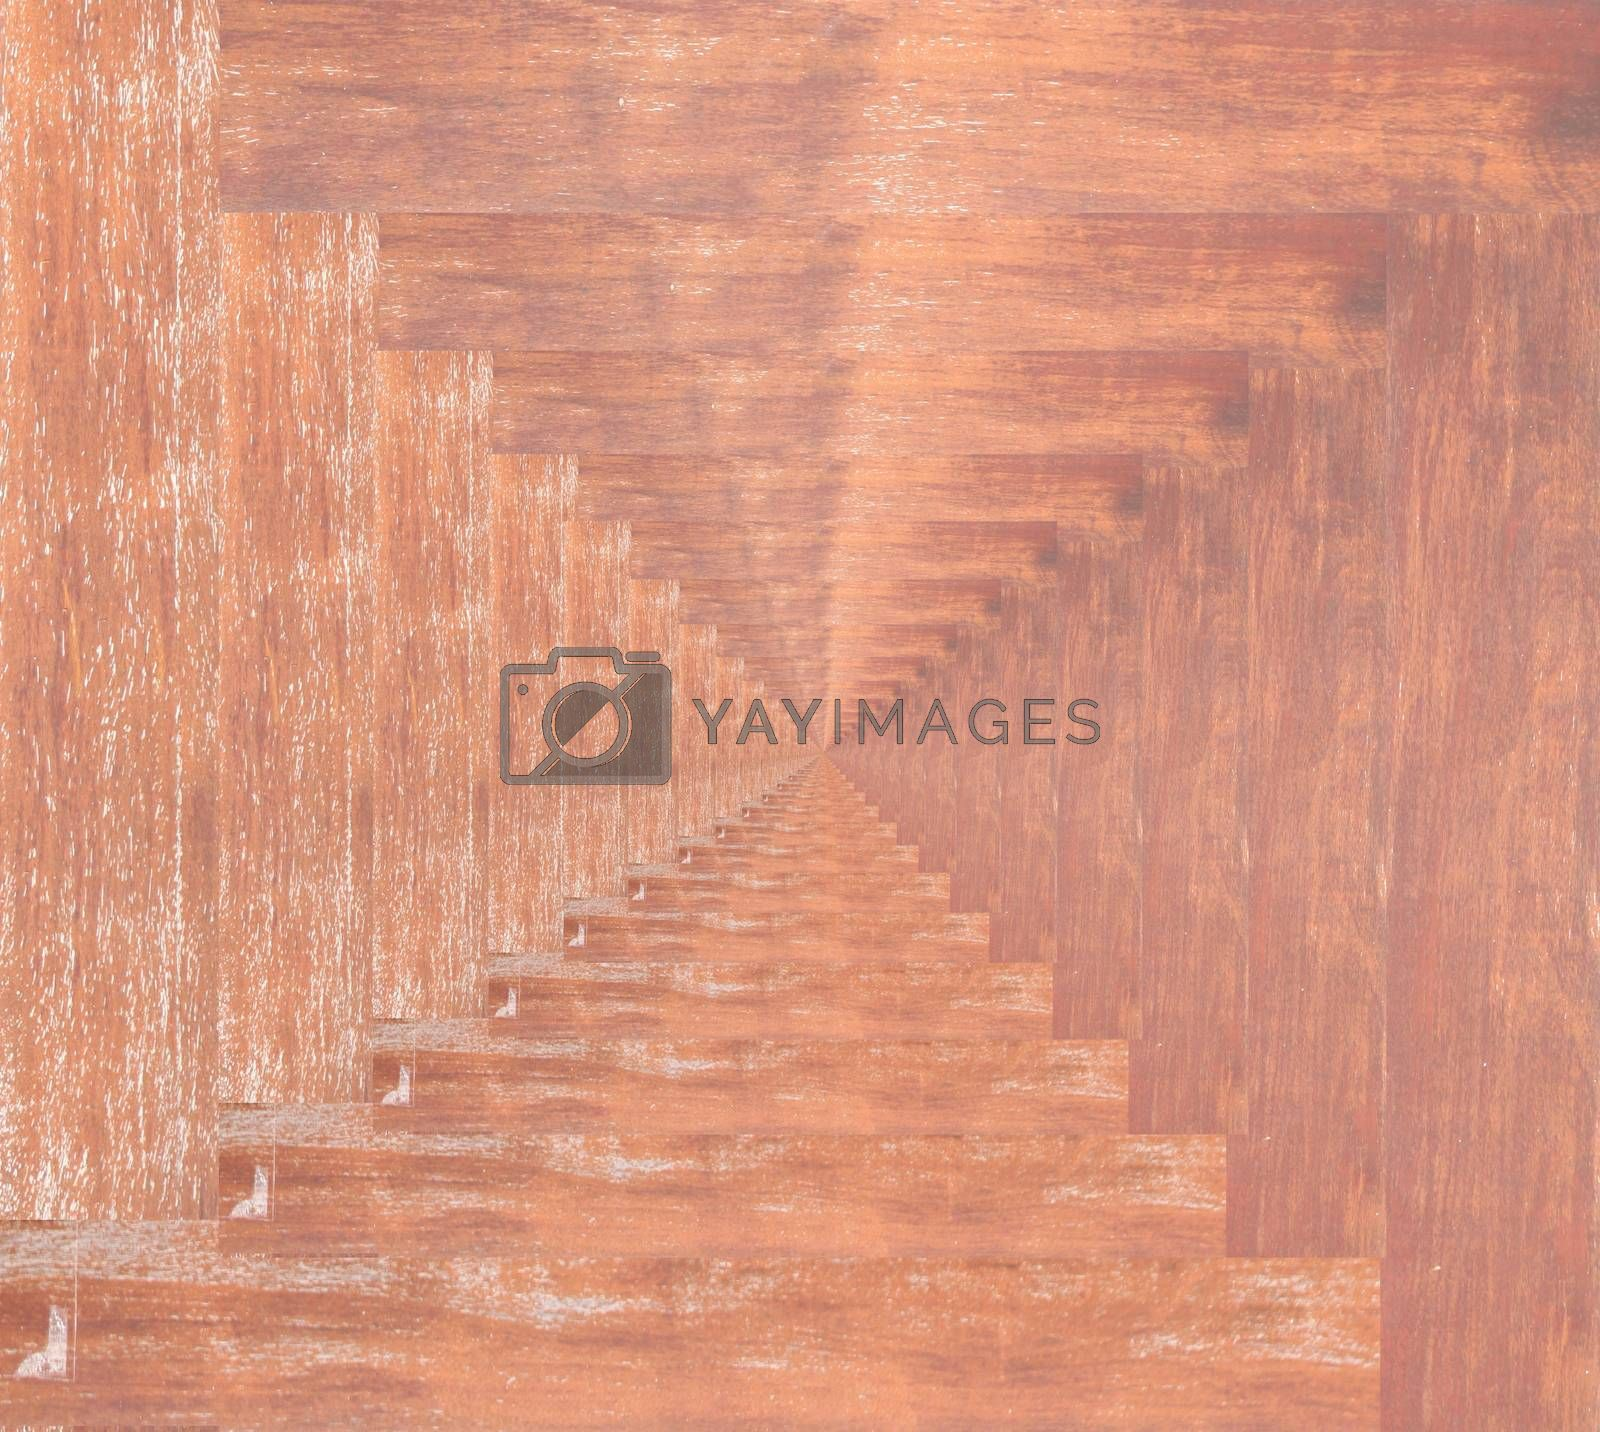 Texture of old wooden planks for background.